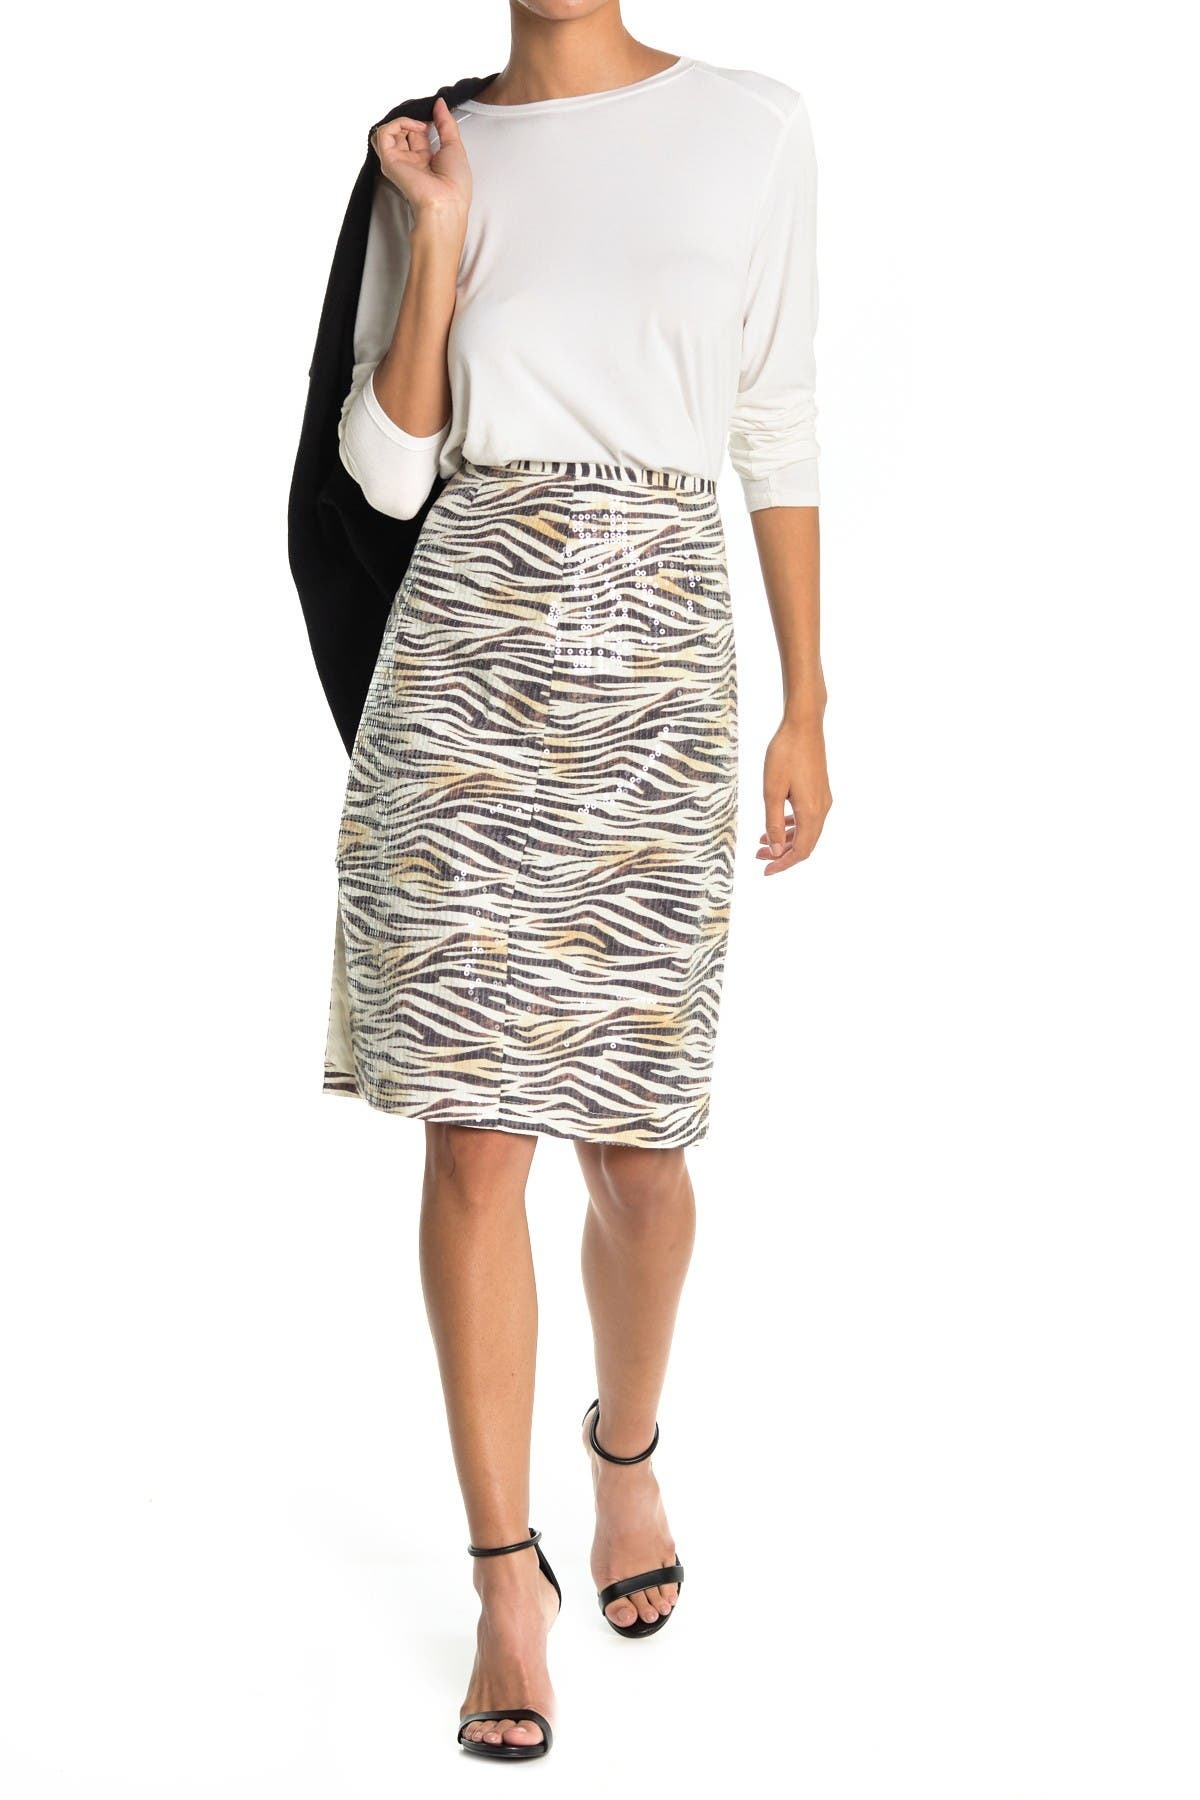 Image of LE SUPERBE Zebra Shine Pencil skirt